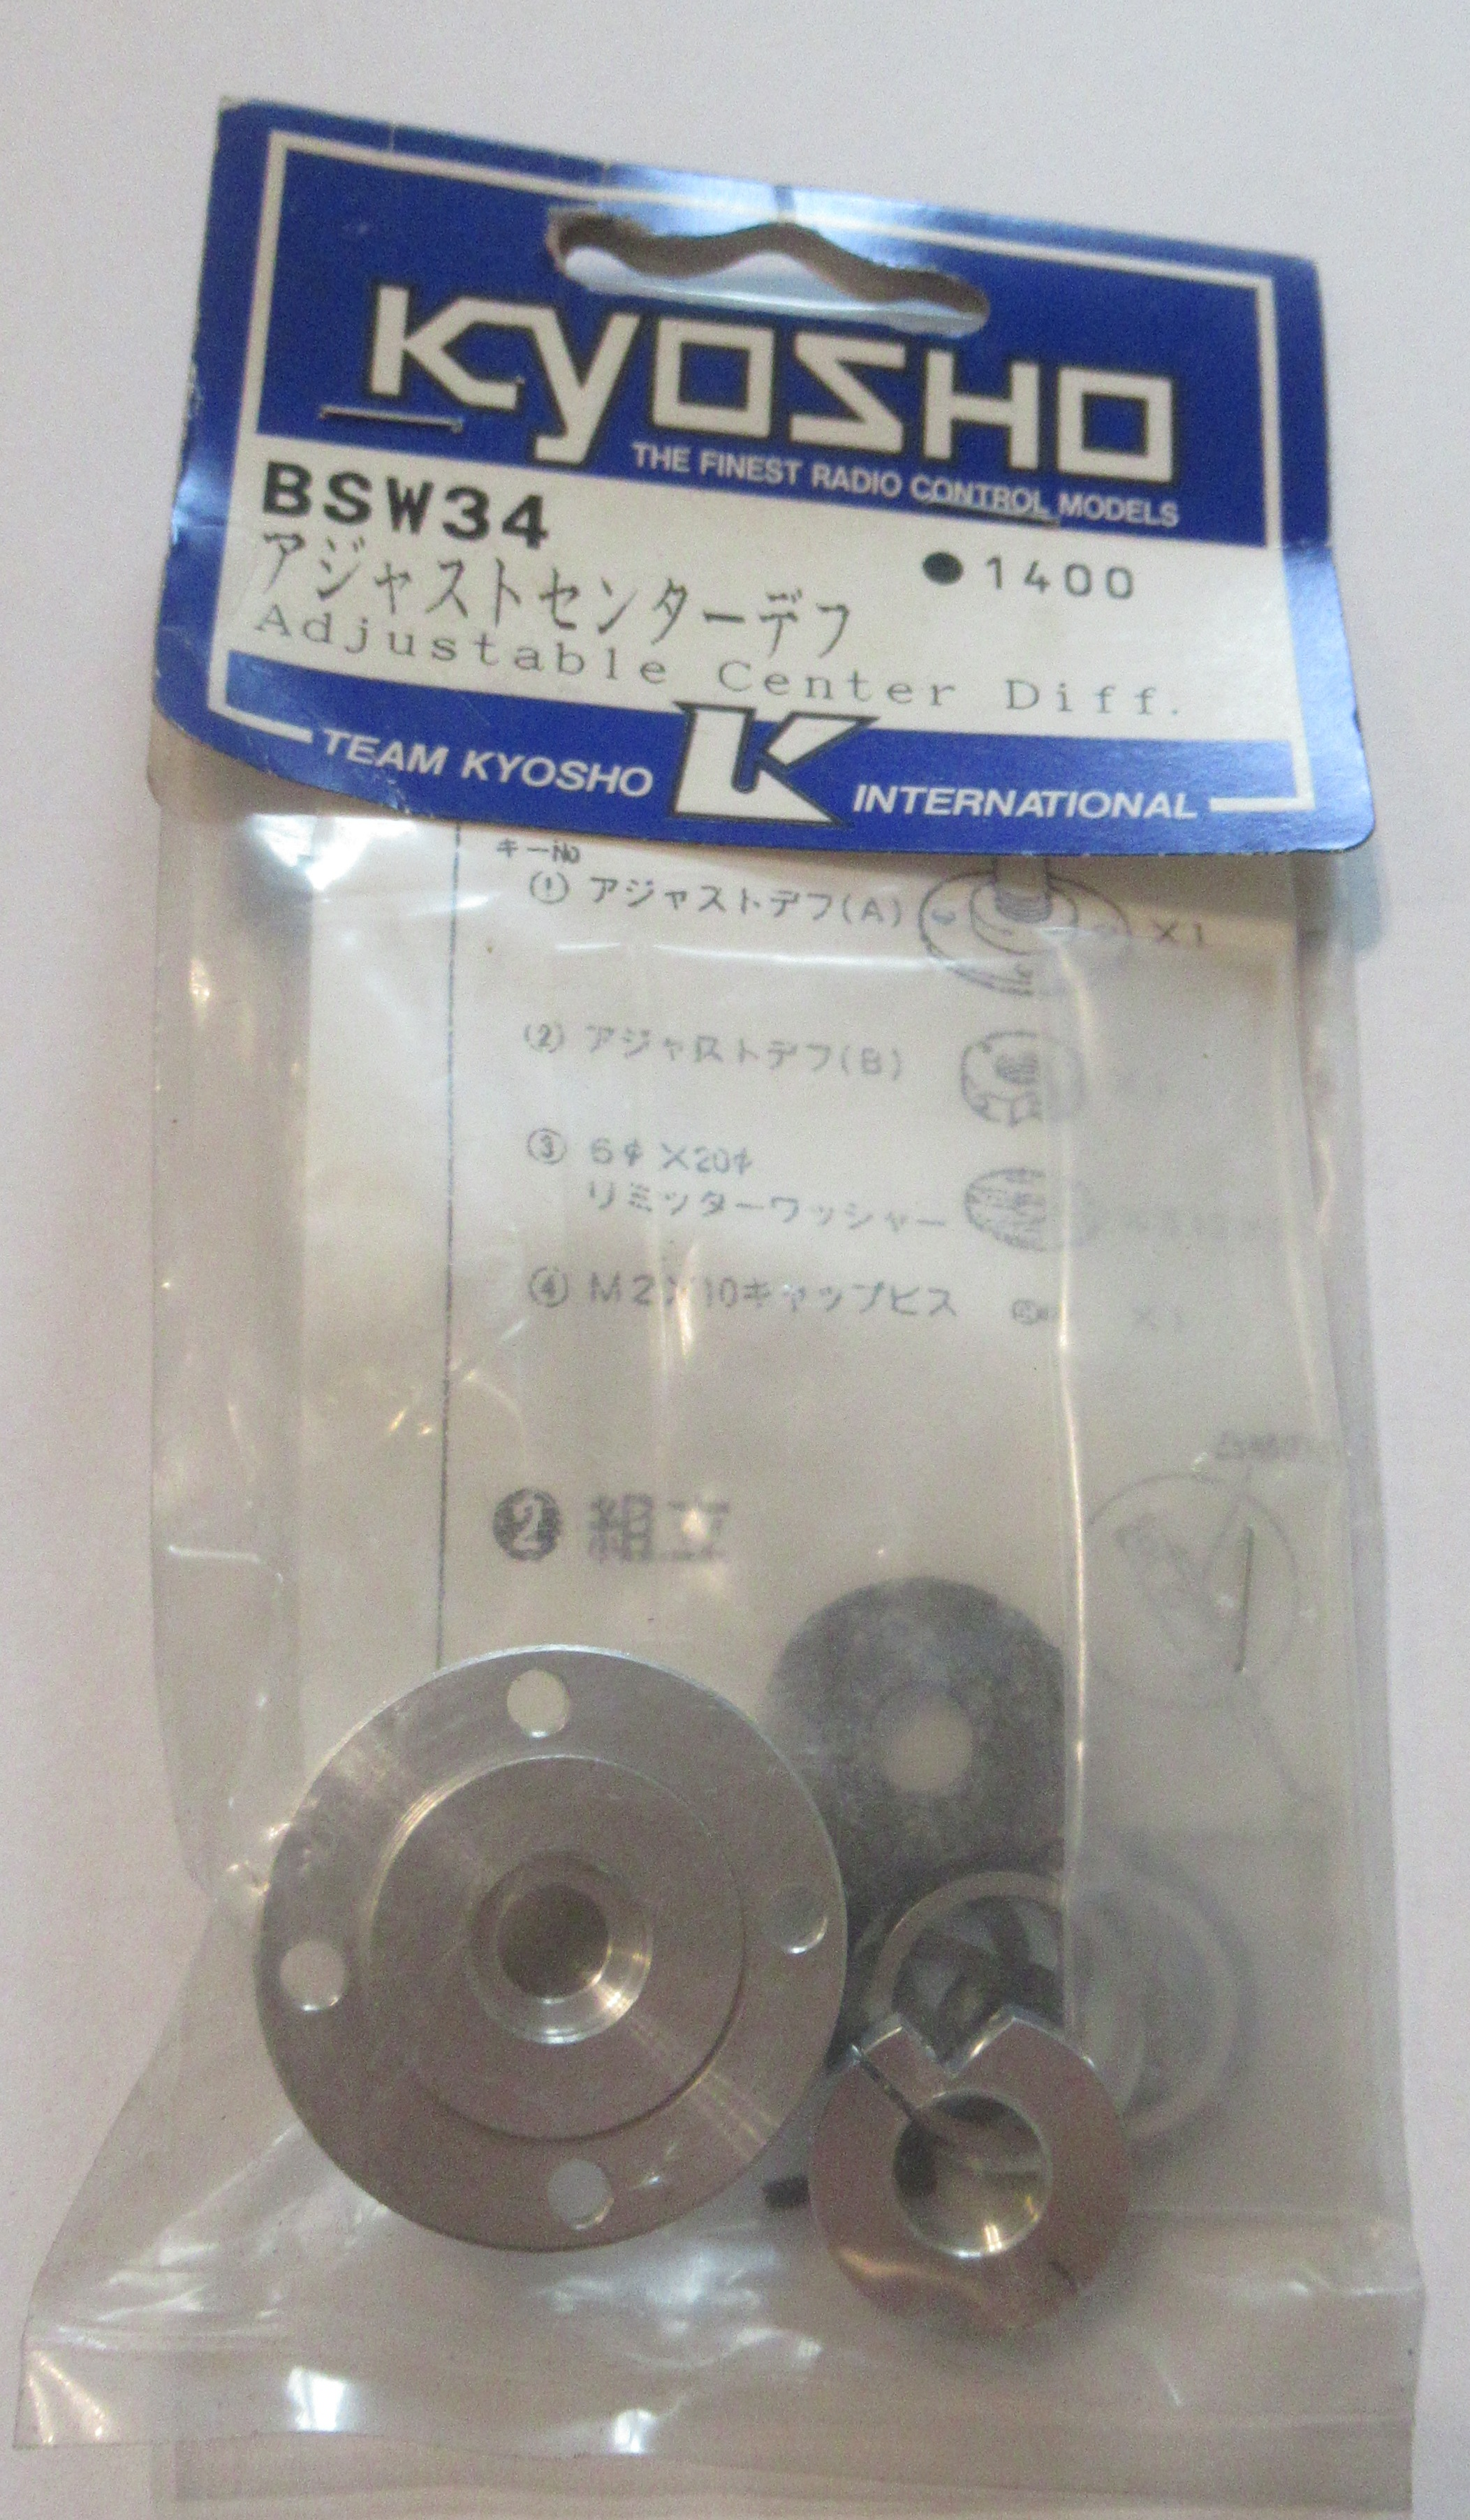 Kyosho BSW34 Adjustable Center Differential